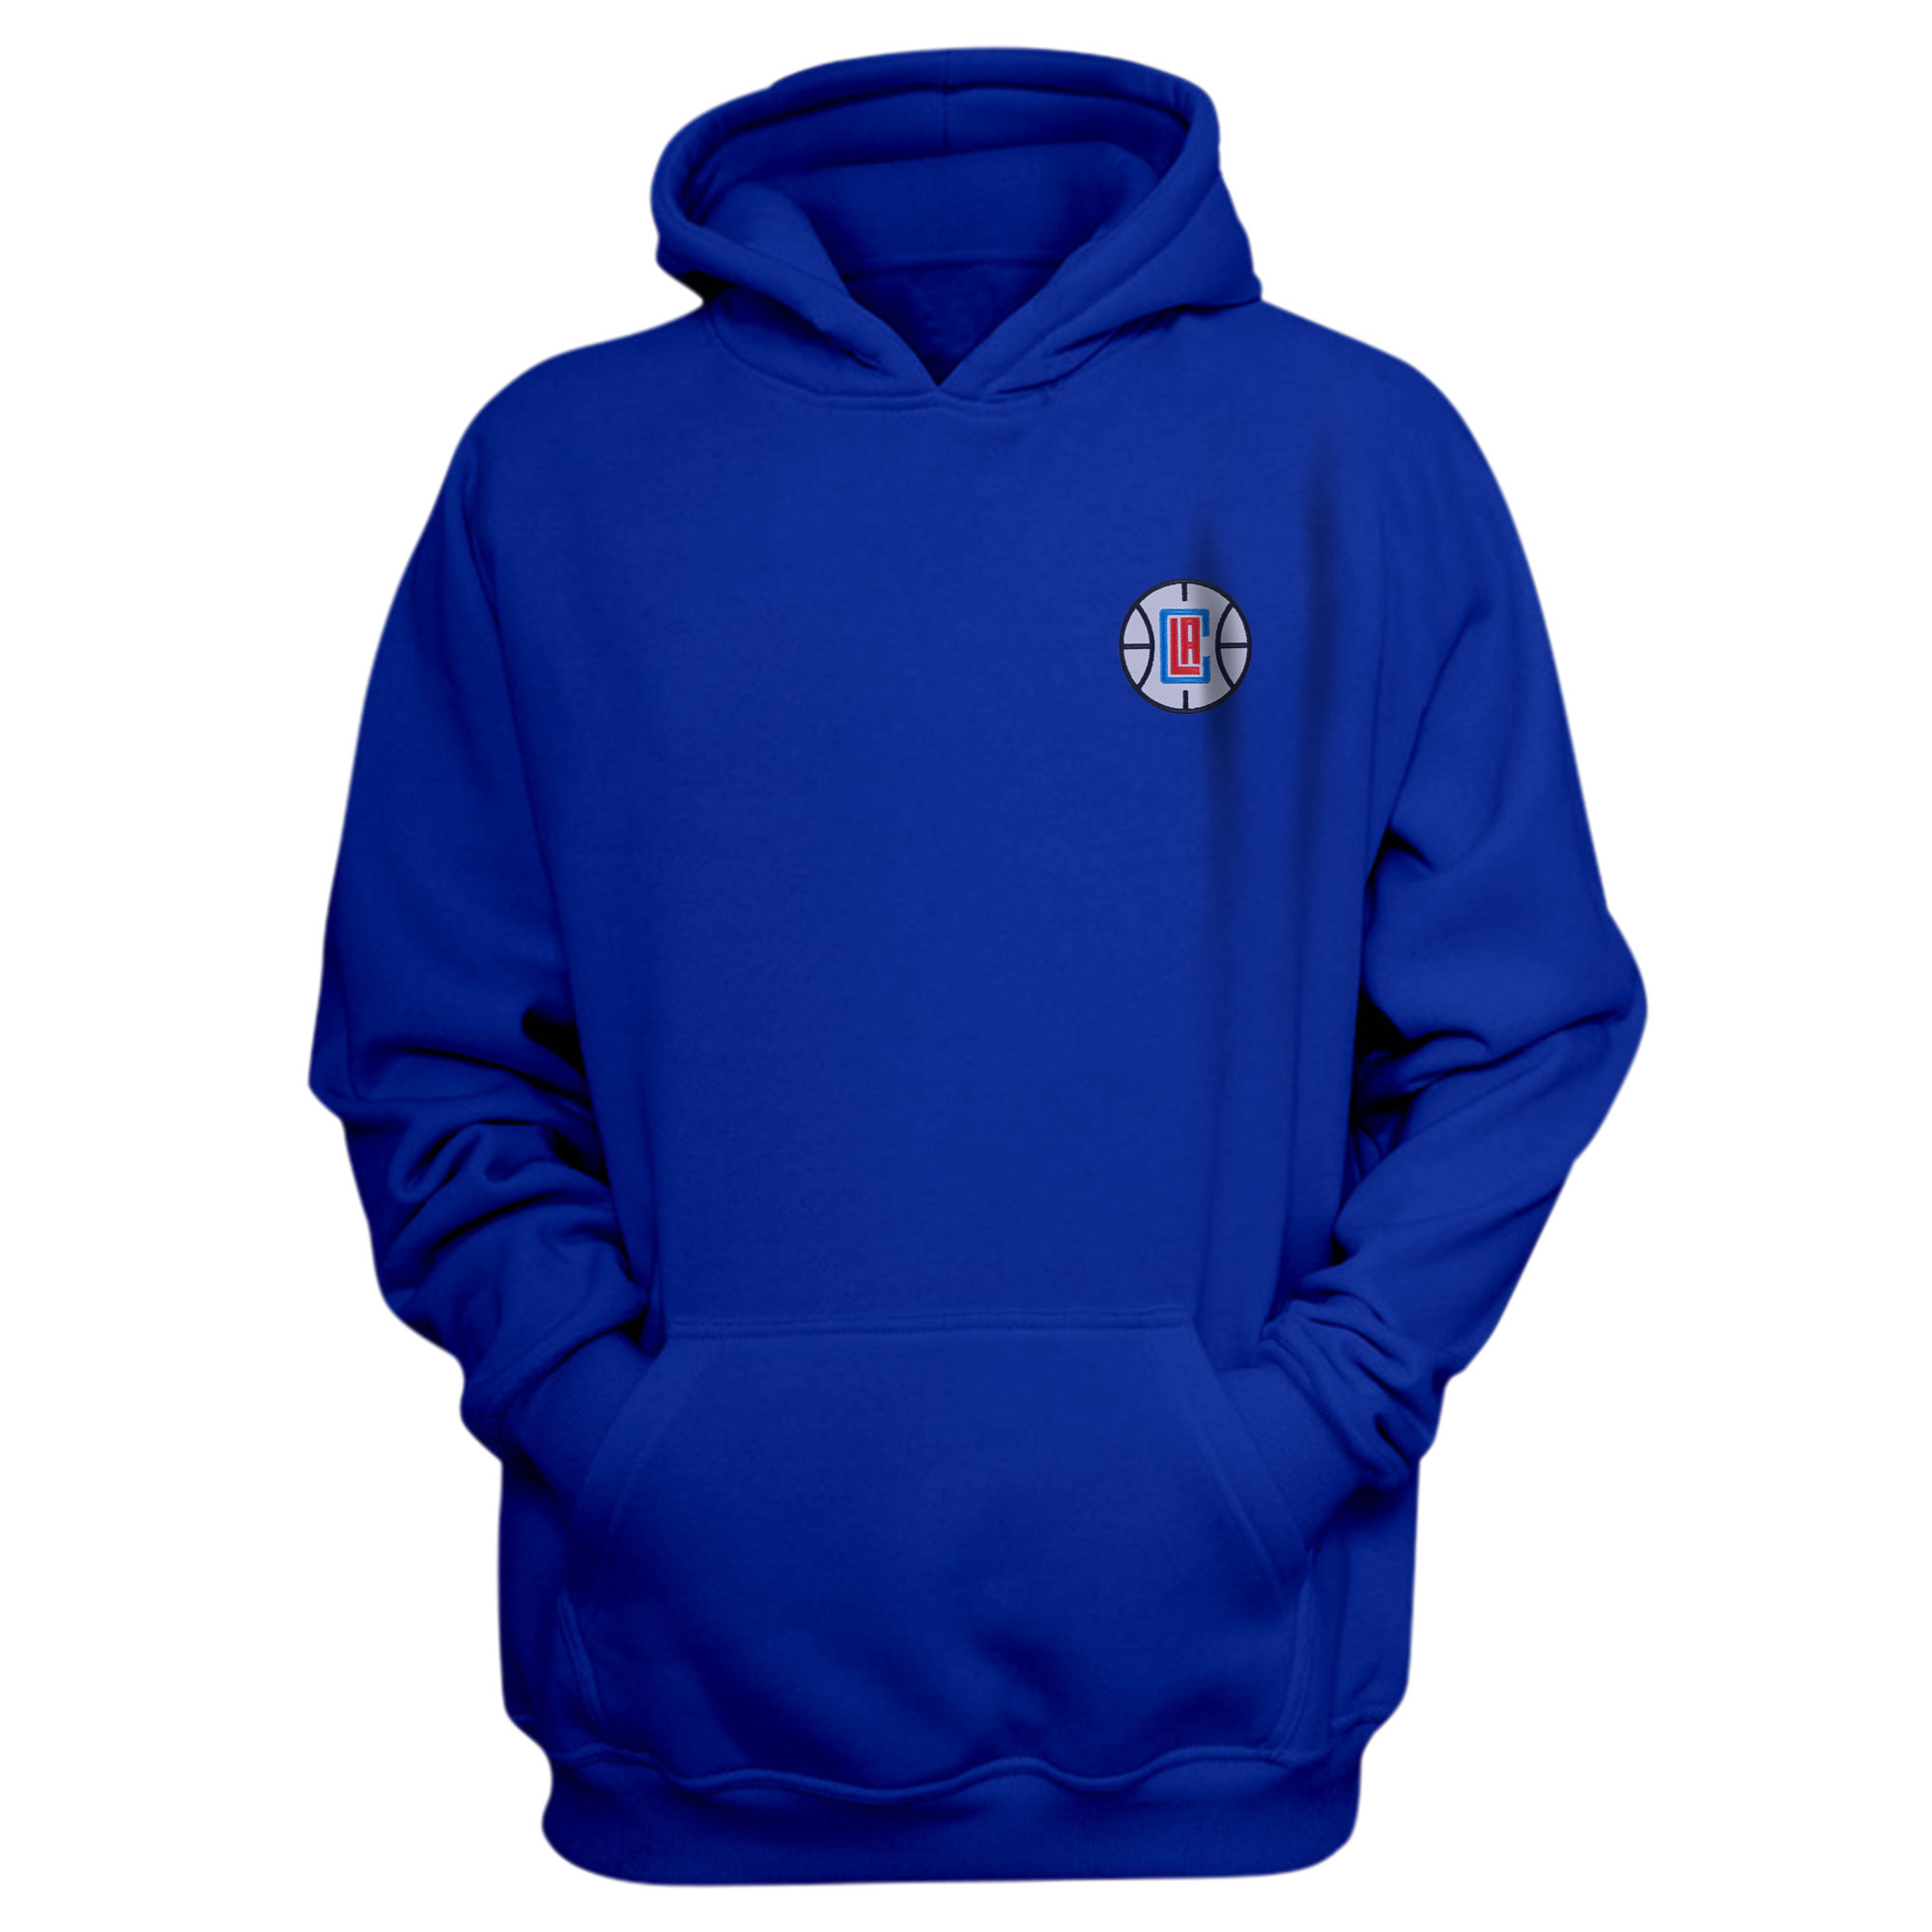 L.A. Clippers Hoodie (Örme)  (HD-BLU-EMBR-CLIPPERS)